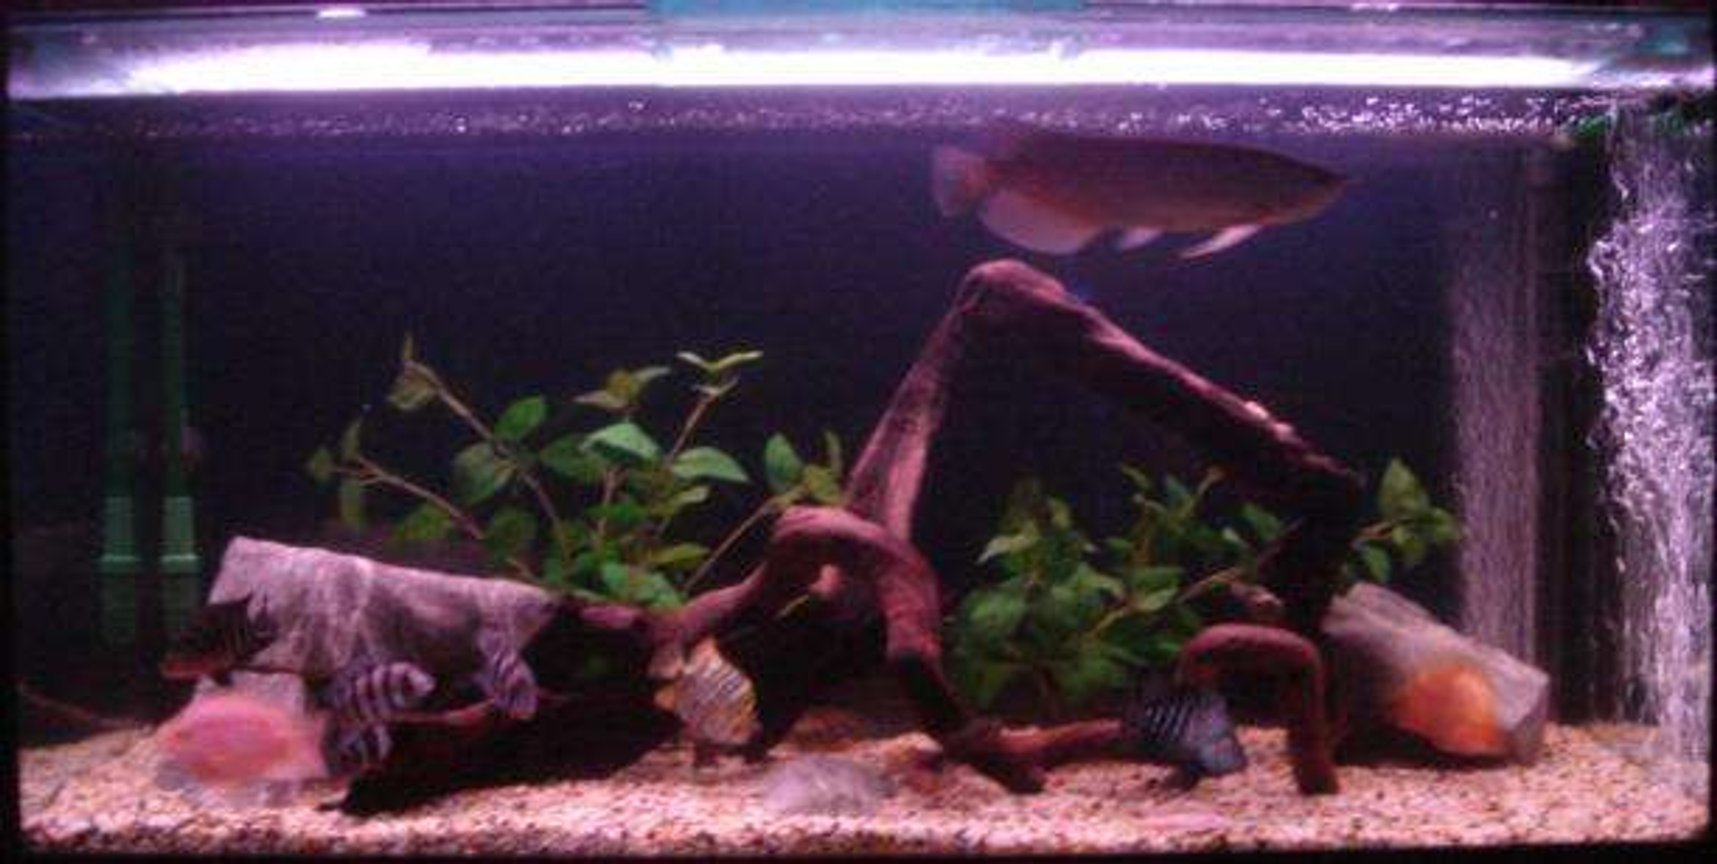 120 gallons freshwater fish tank (mostly fish and non-living decorations) - my tank